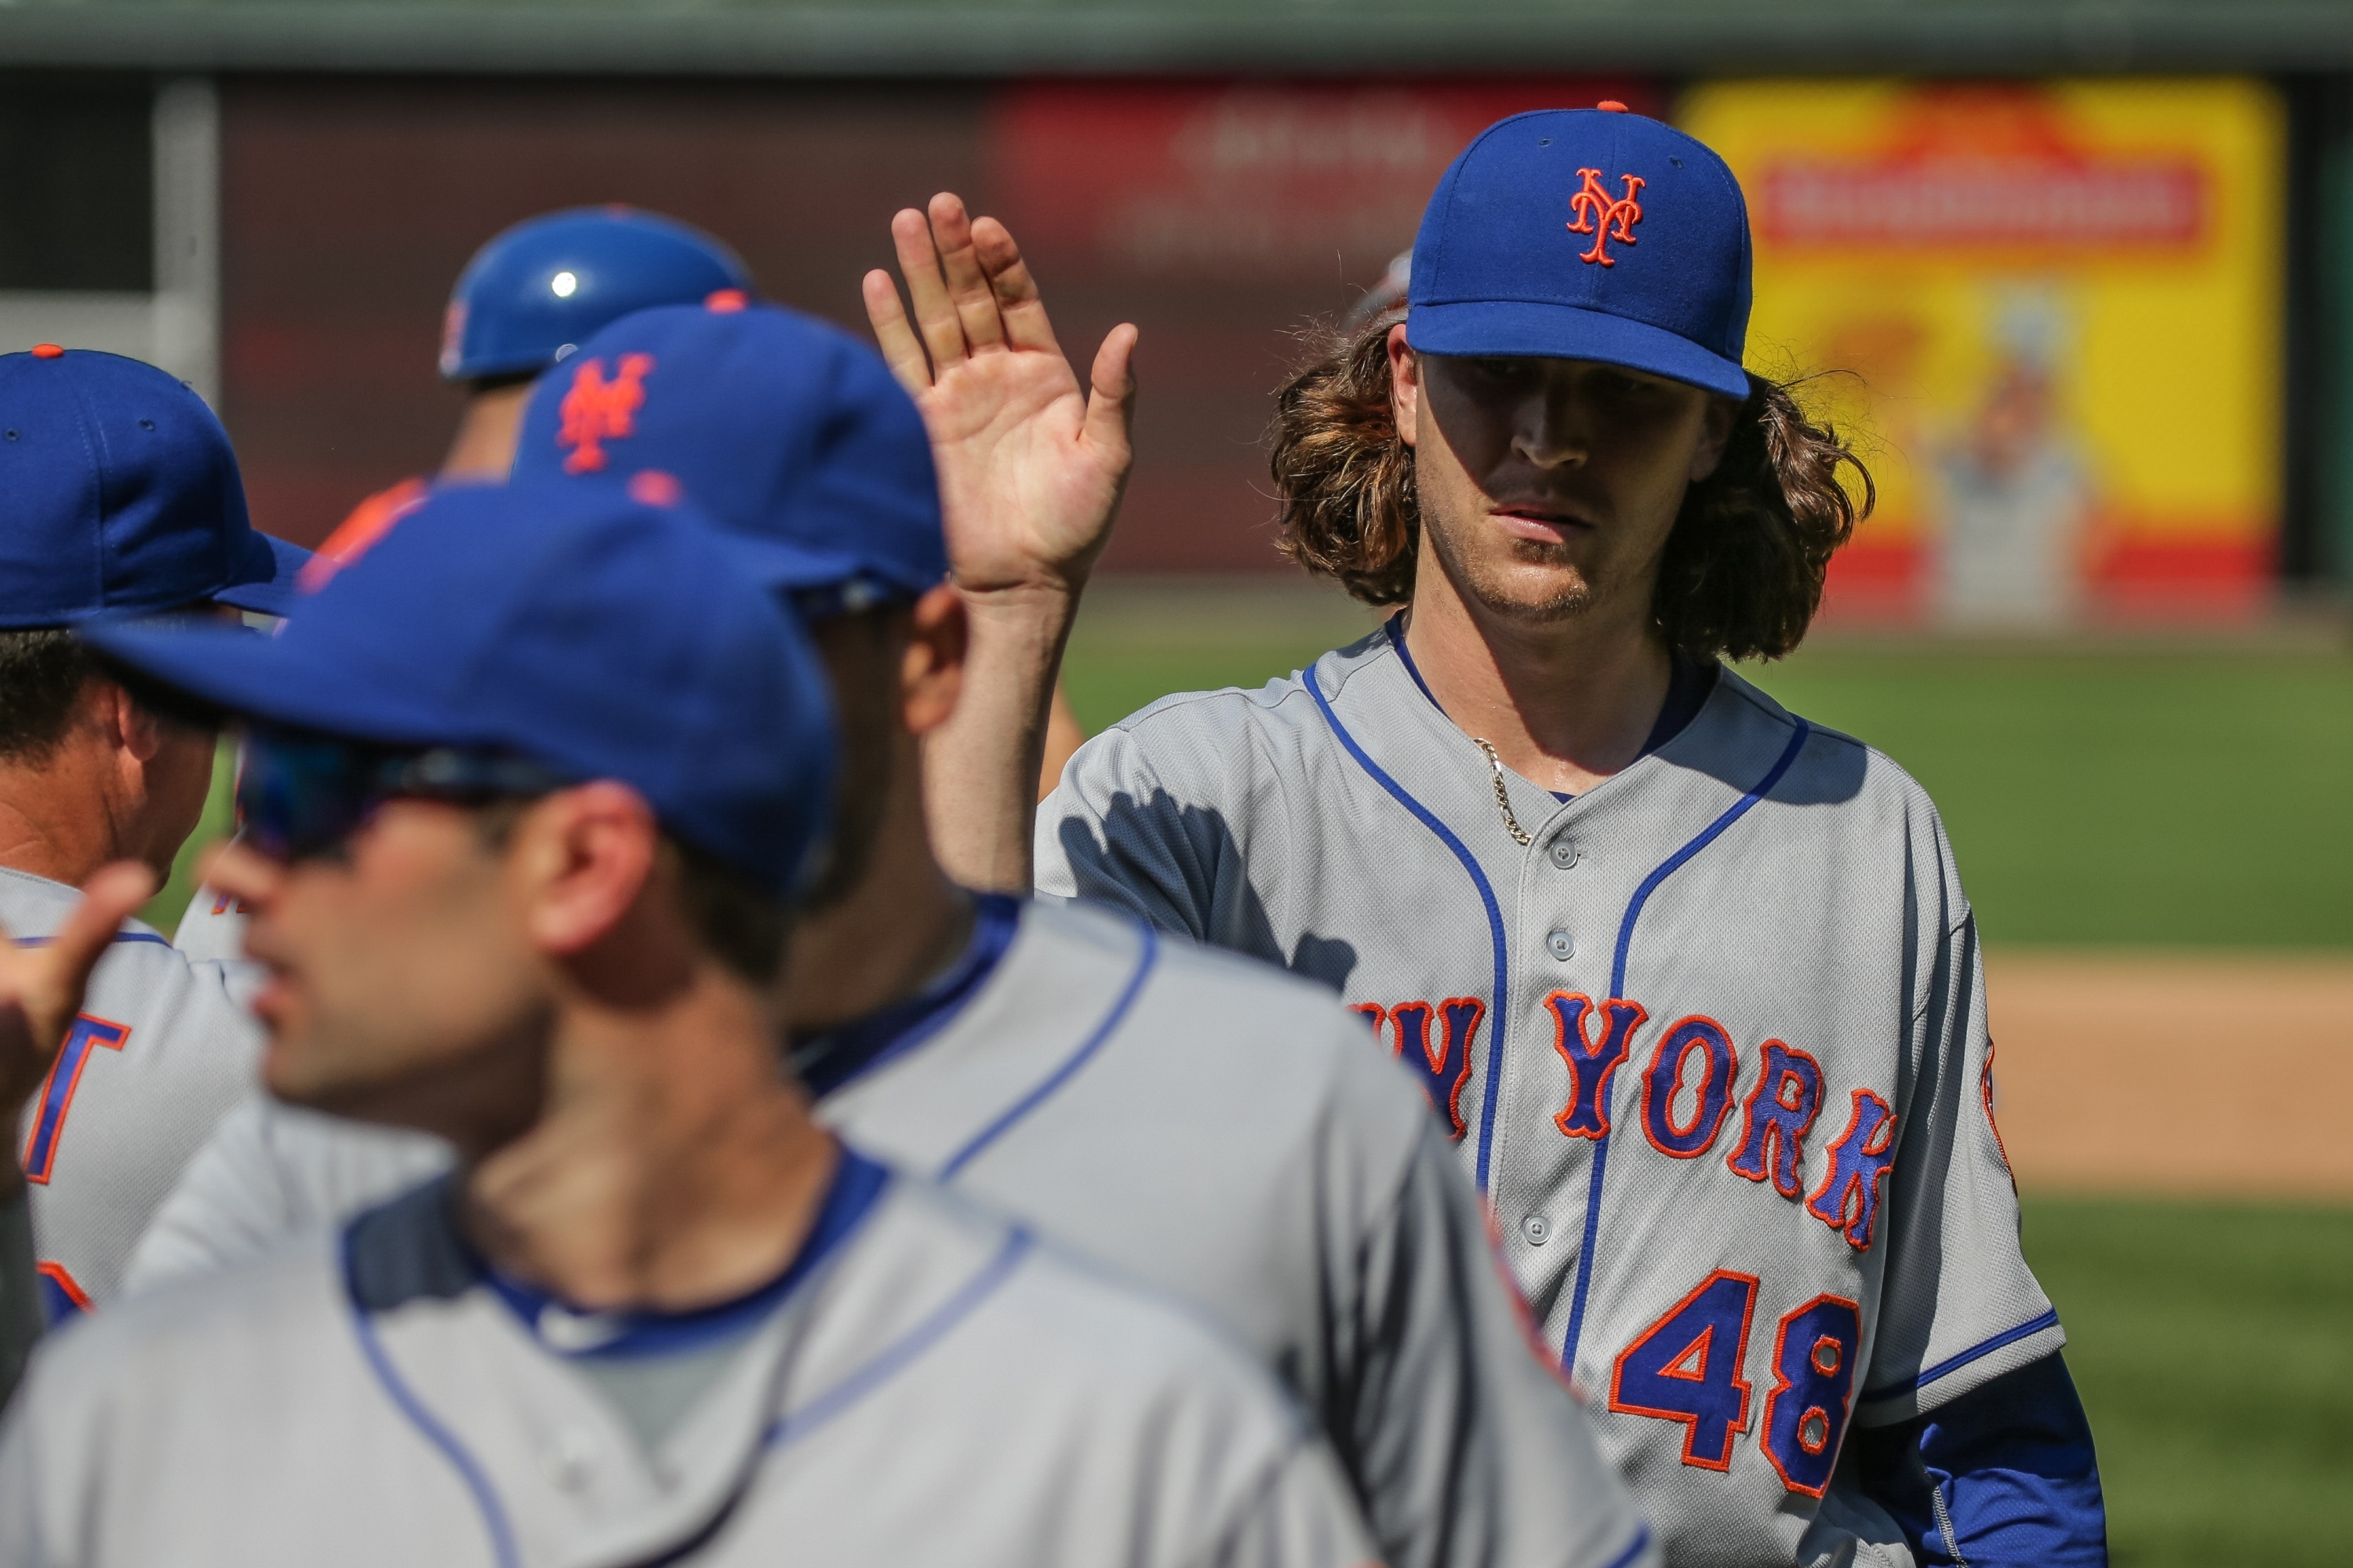 degrom Erstaunlich Www Hit De Dekorationen